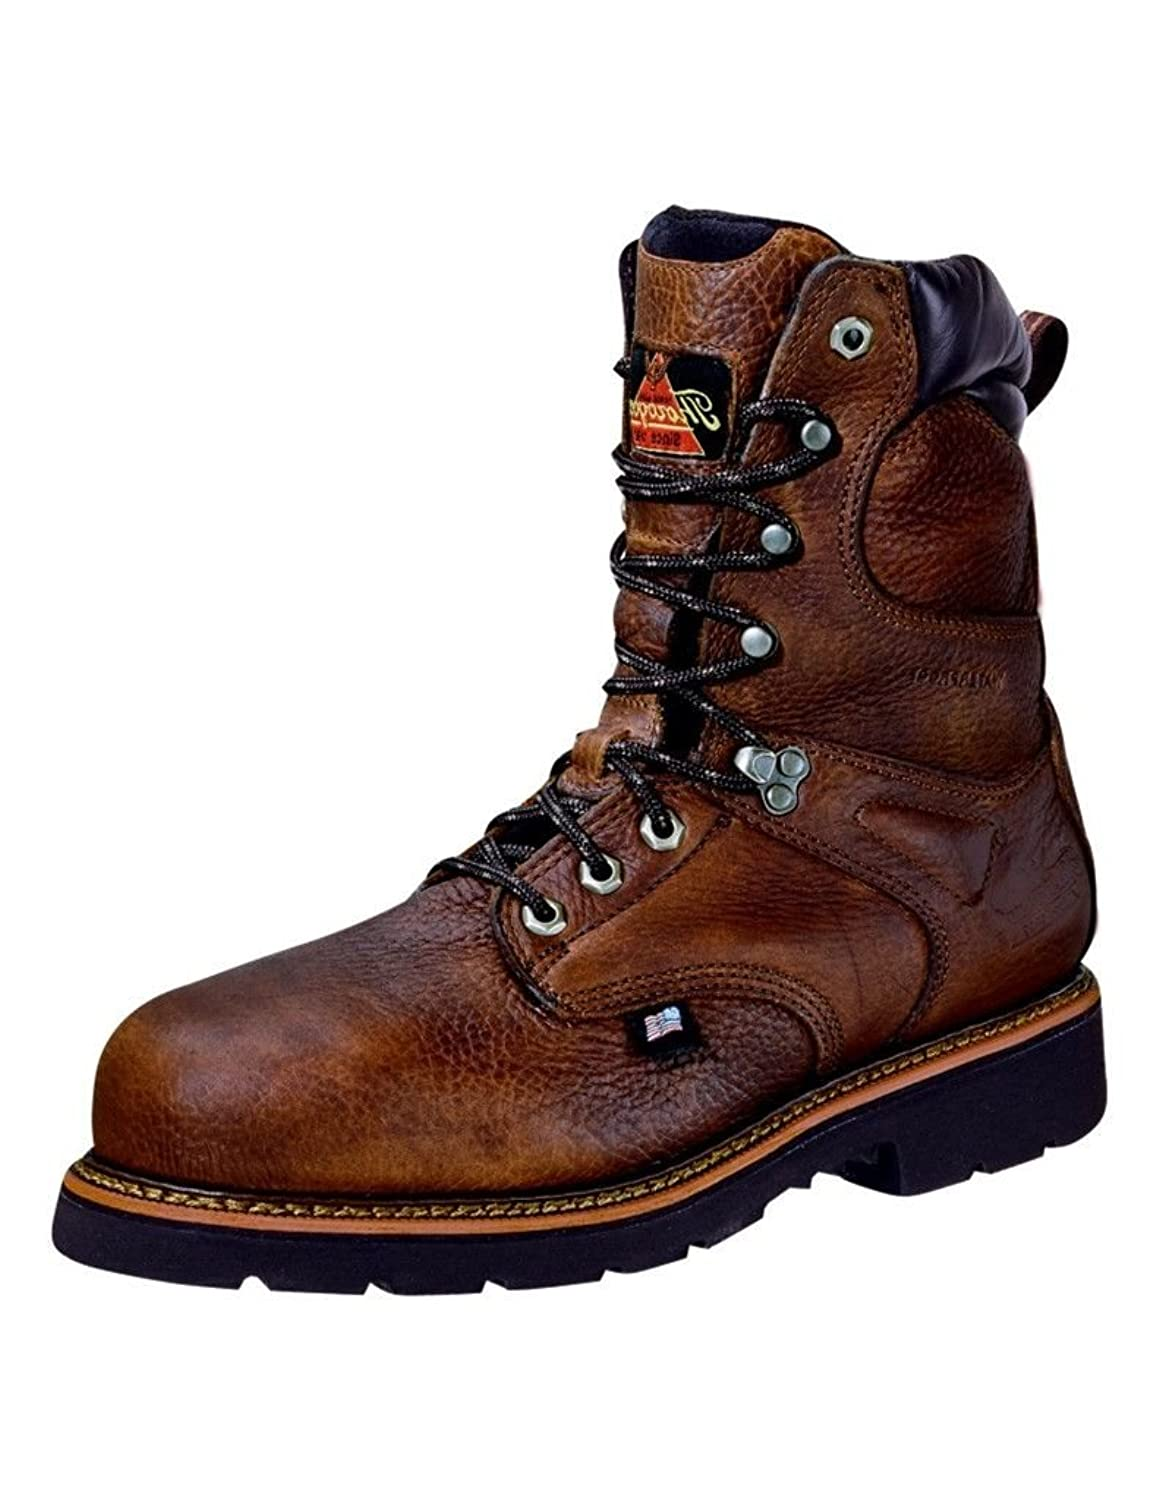 47562c46b1d Thorogood Men's 8'' Waterproof Thinsulate B-400G Insulation Safety Toe  Leather Boots